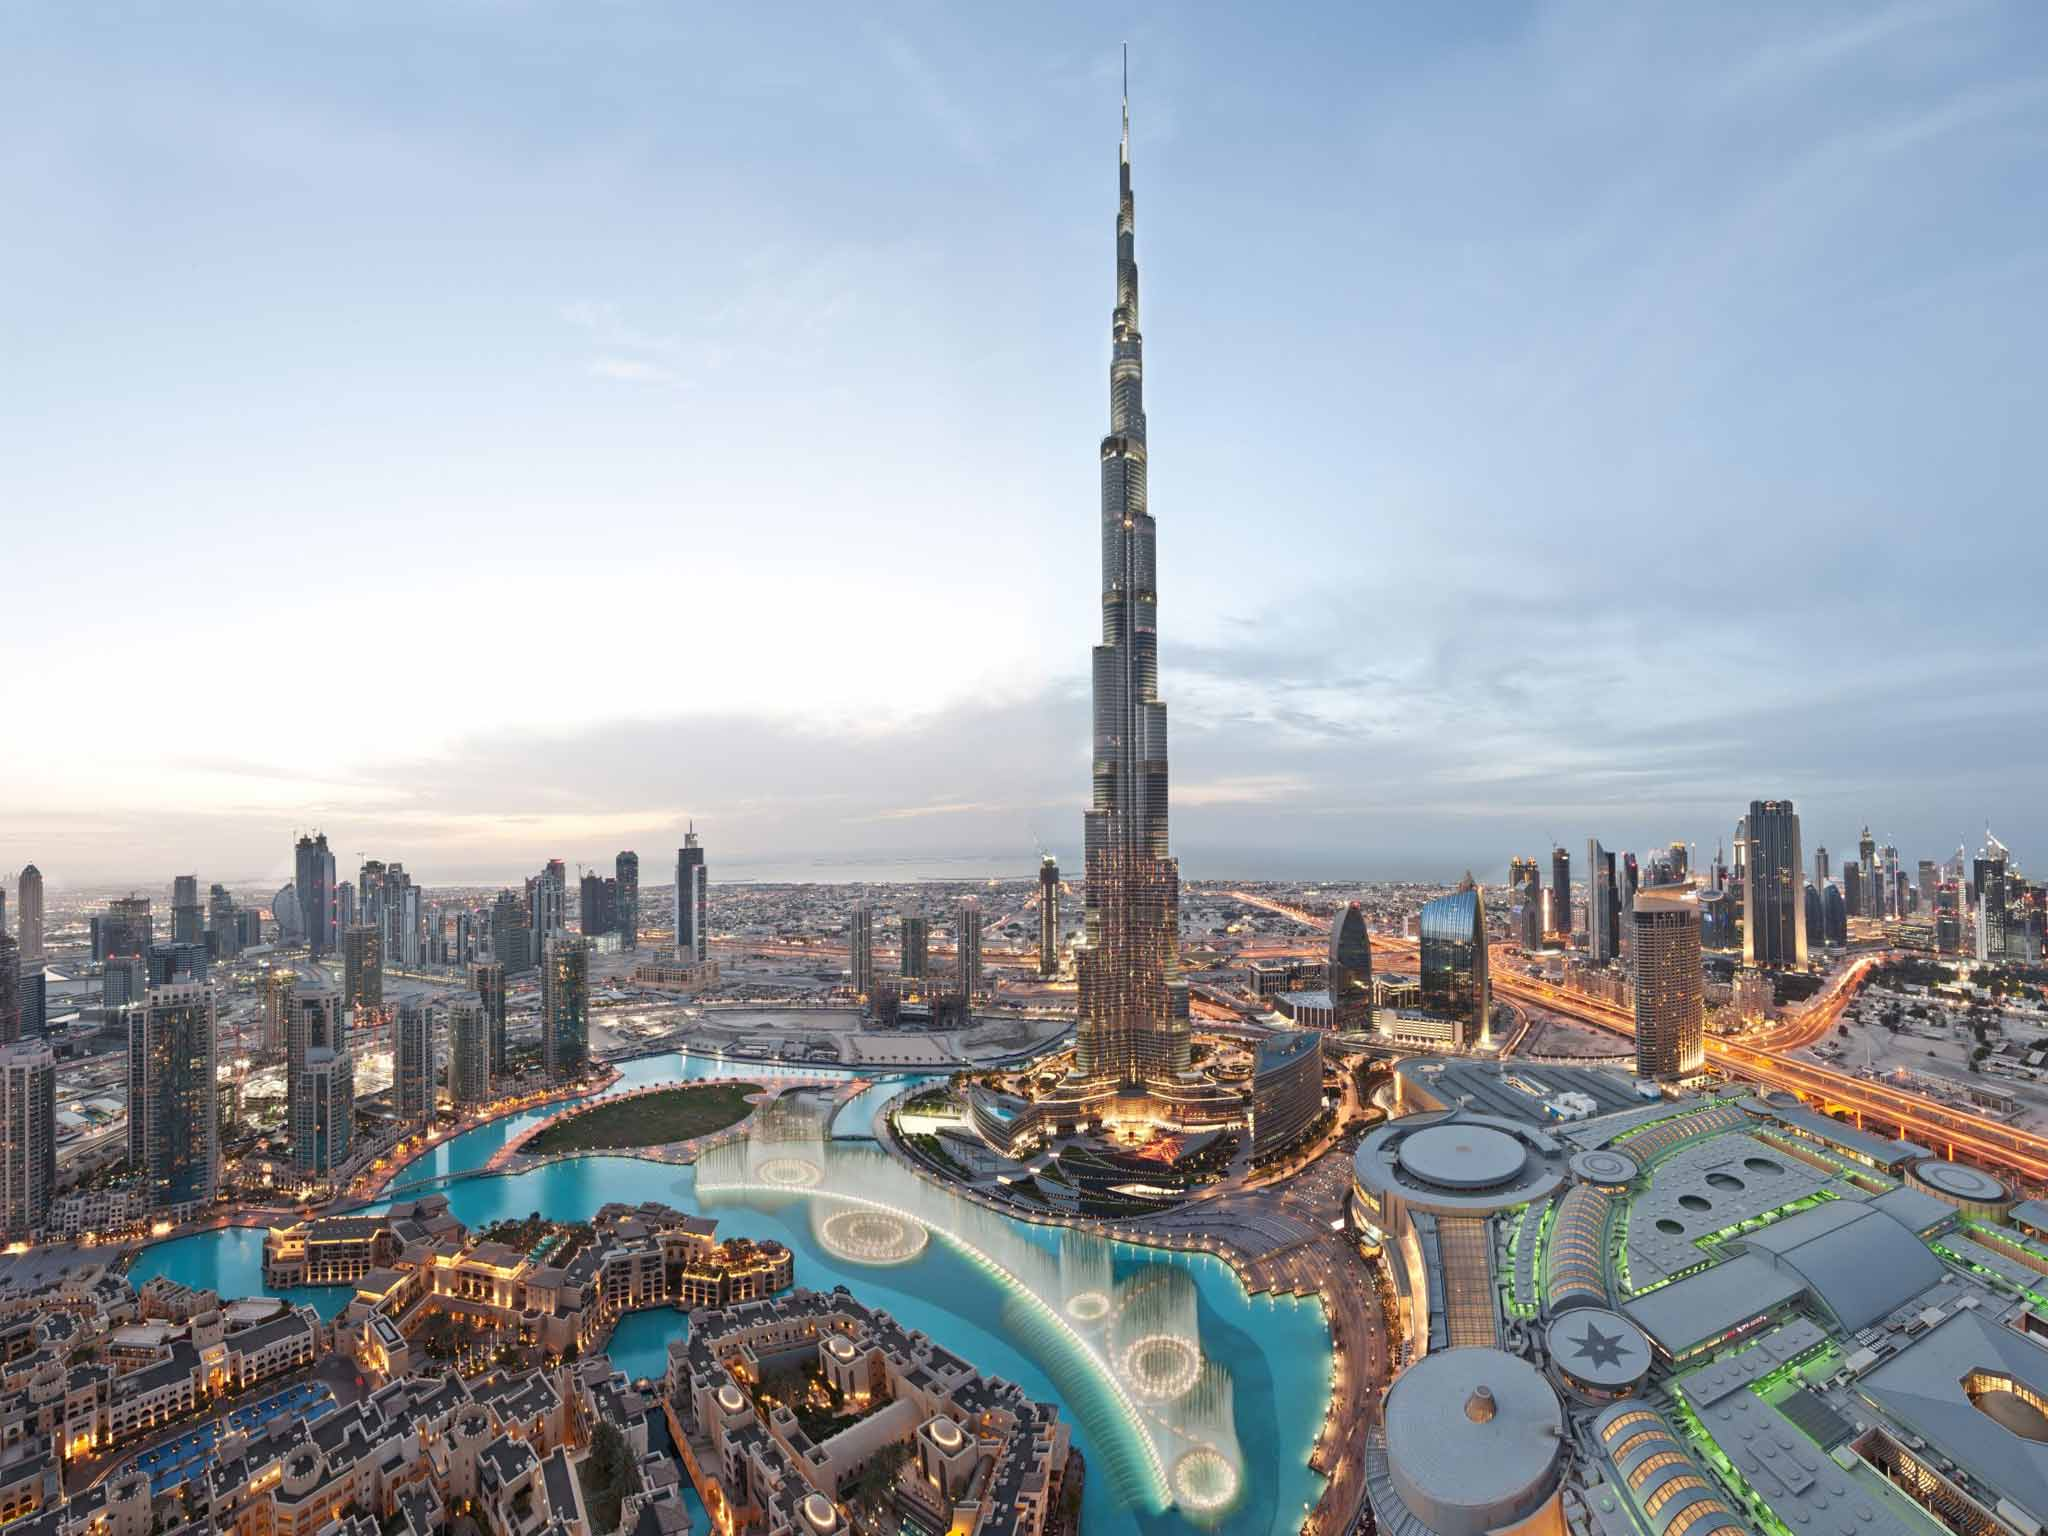 Dubai travel tips Where to go and what to see in 48 hours  The